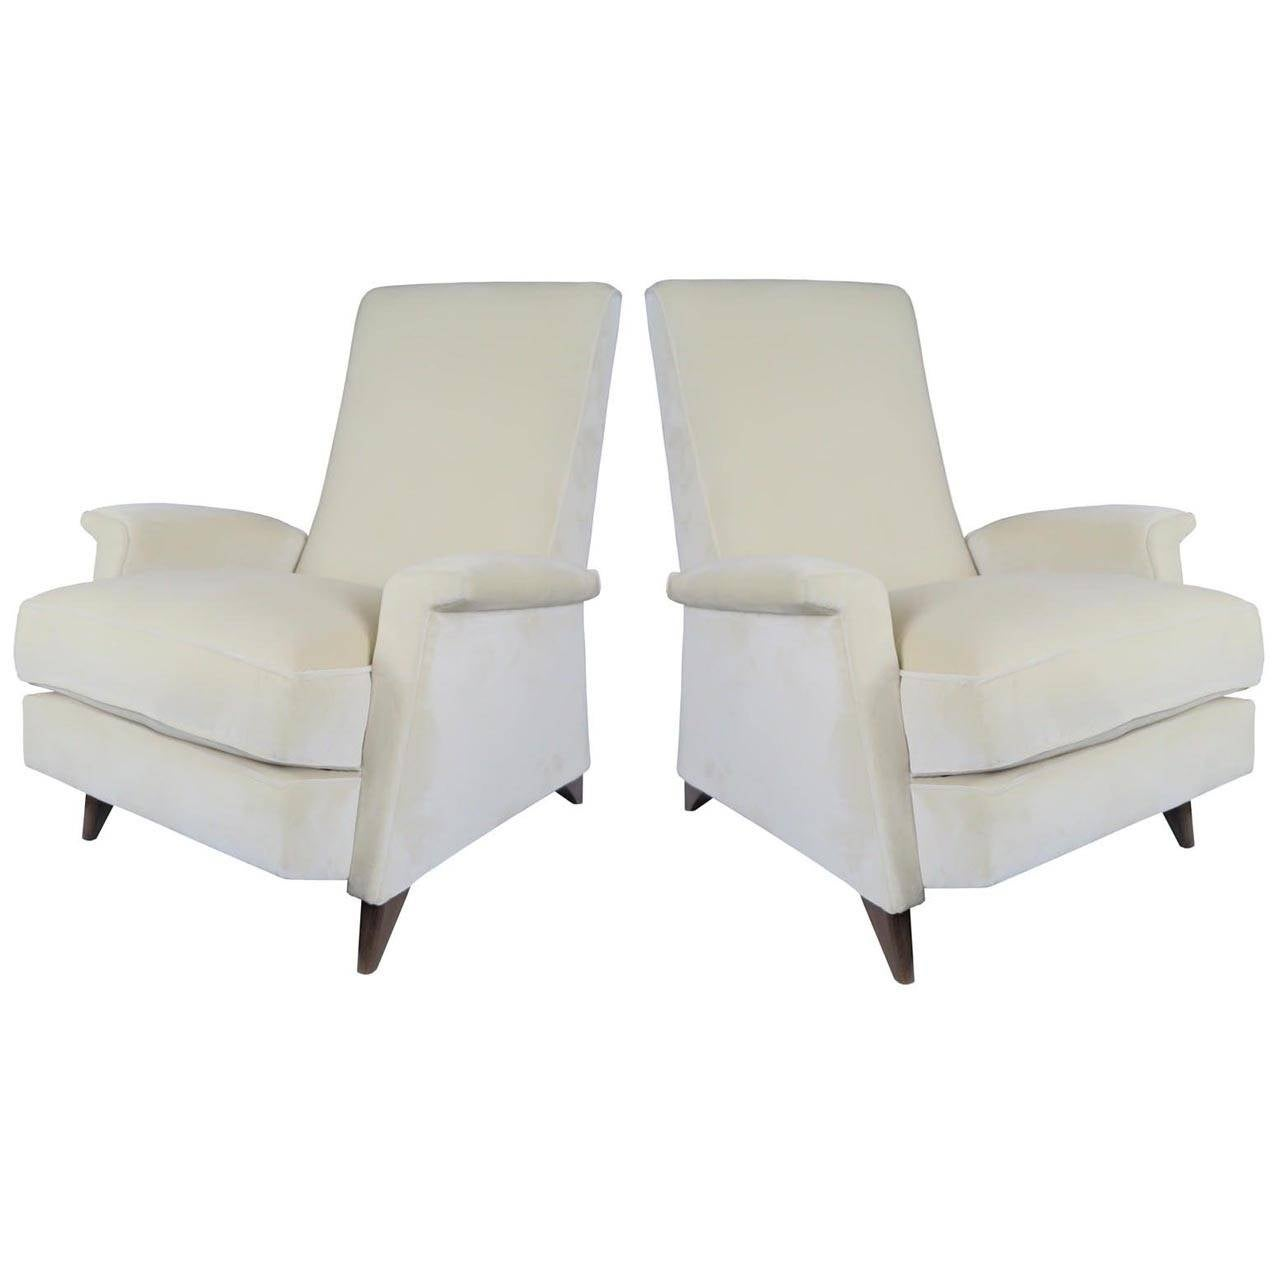 pair wassily id lounge of furniture seating z breuer sale for chairs by early chair marcel f at knoll